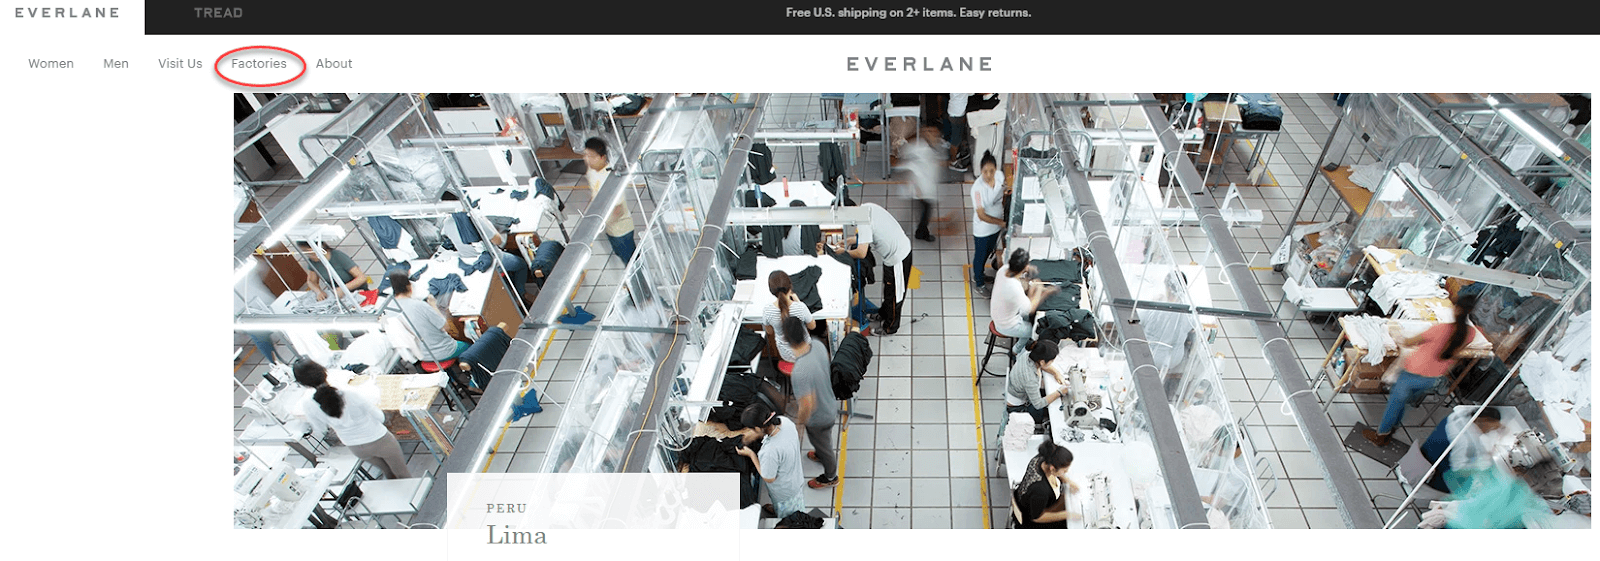 Screenshot of Everlane's page about the factory in Lima